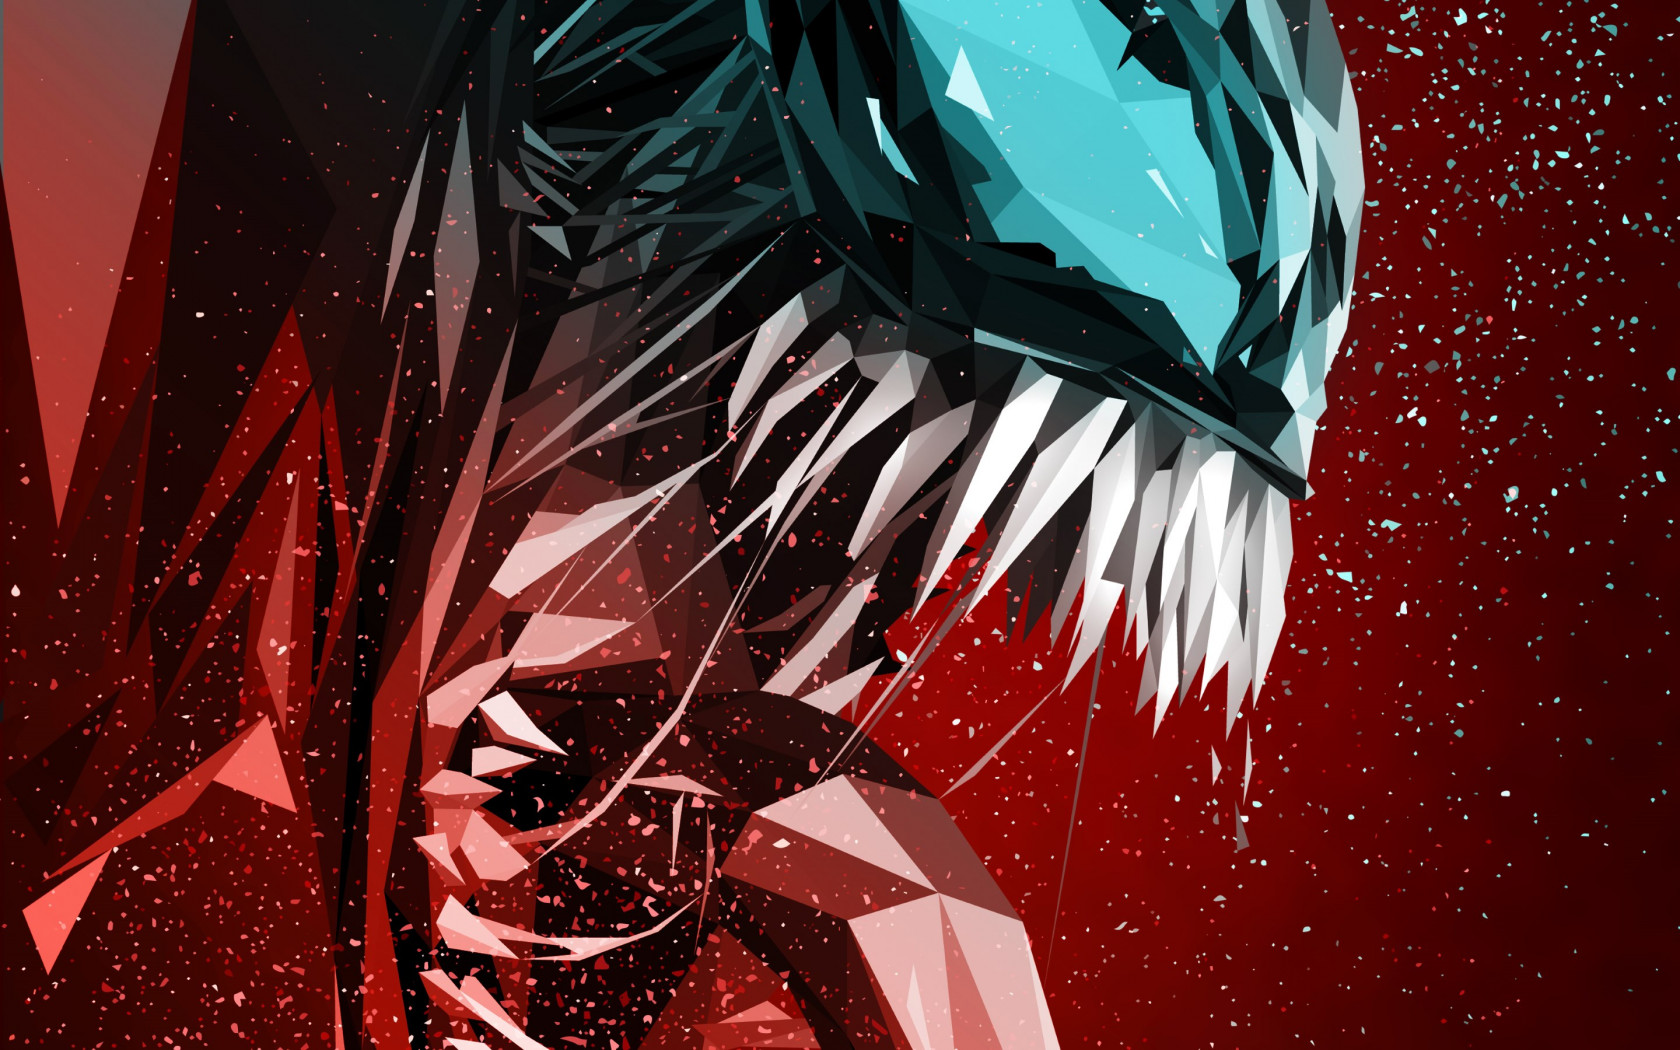 Venom digital art poster wallpaper 1680x1050